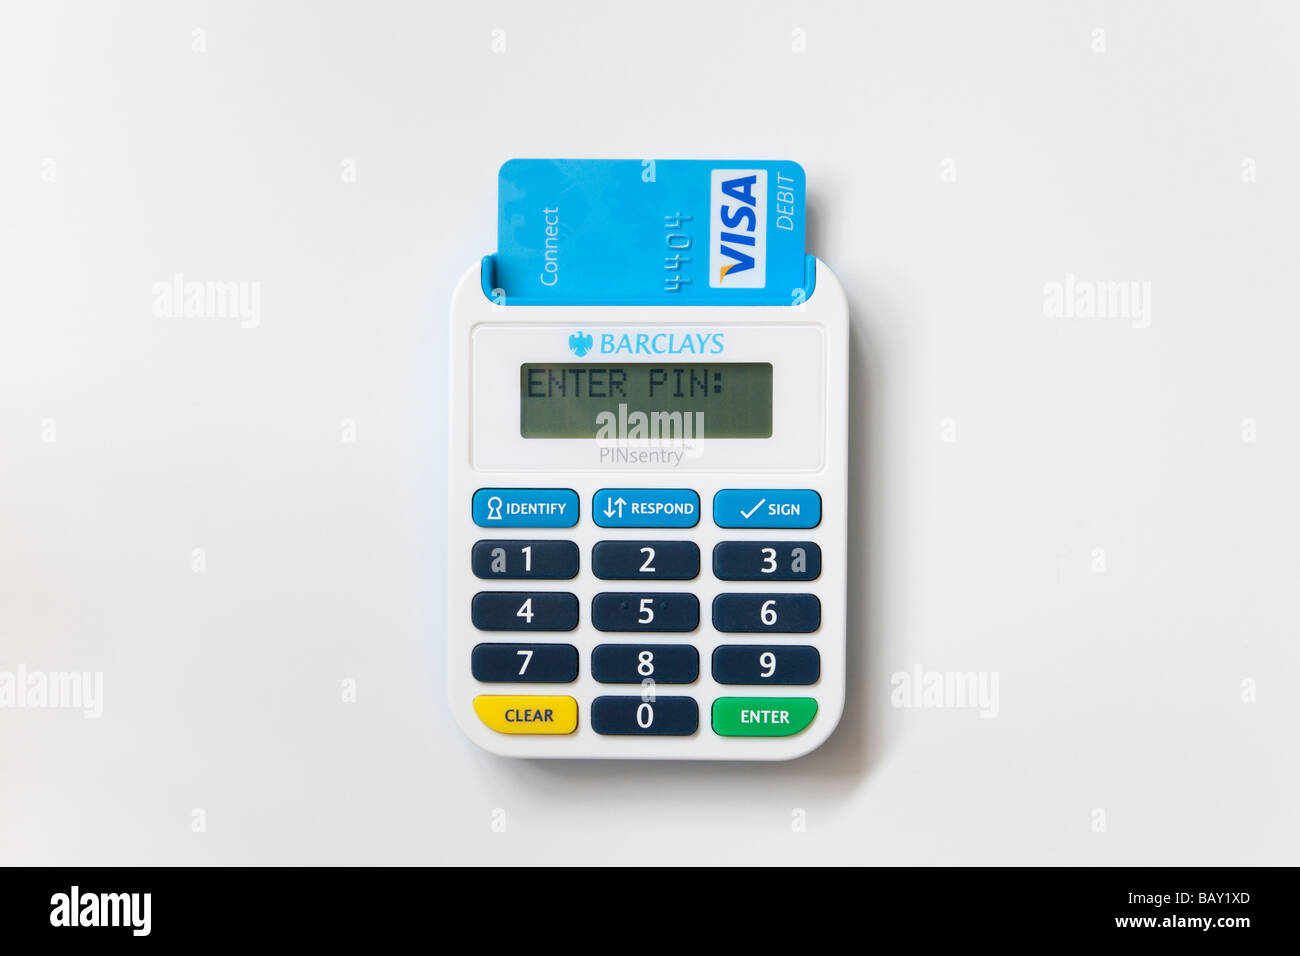 Close up of Barclays pinsentry bankcard reader with Visa connect debit card inserted. England UK - Stock Image